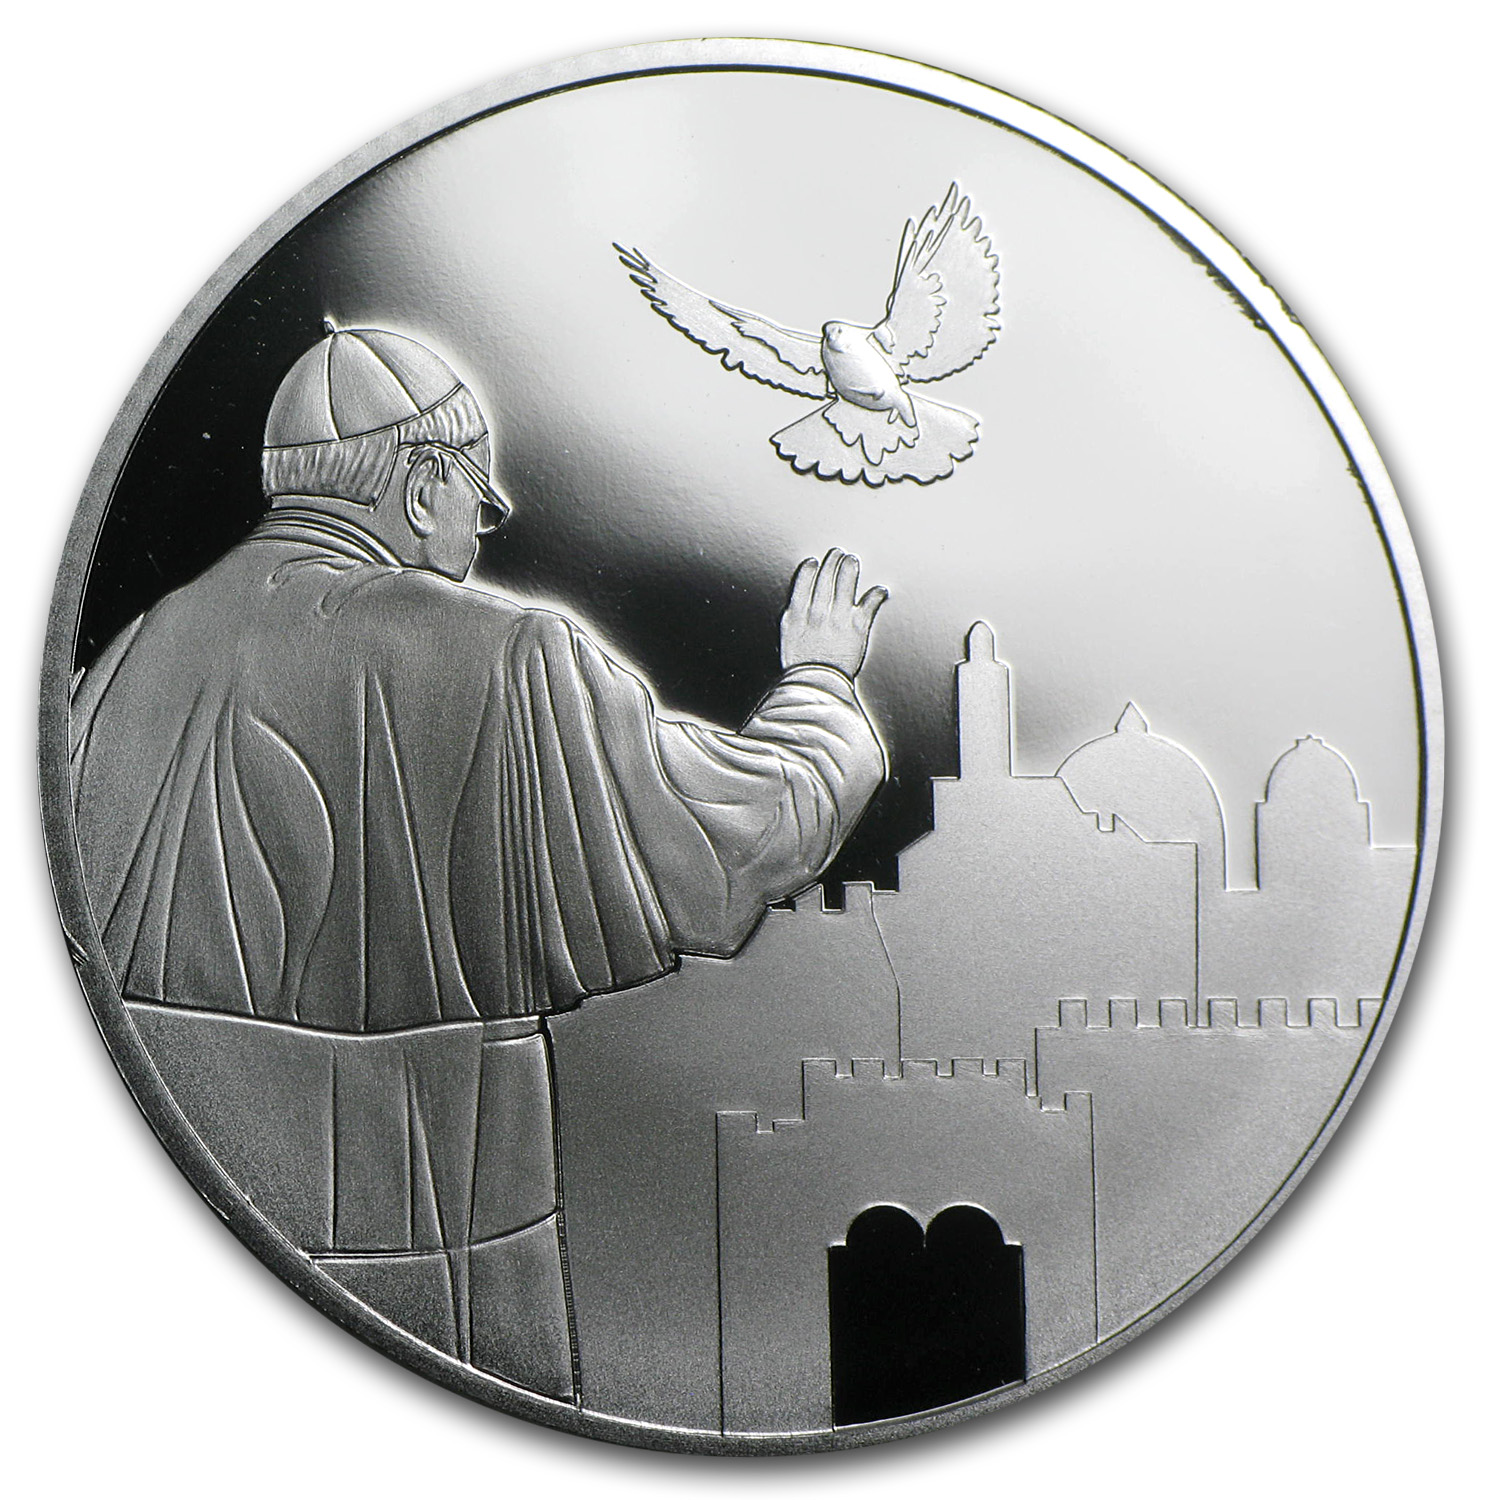 2014 Pope Francis Visit to the Holy Land 1 oz Silver .999